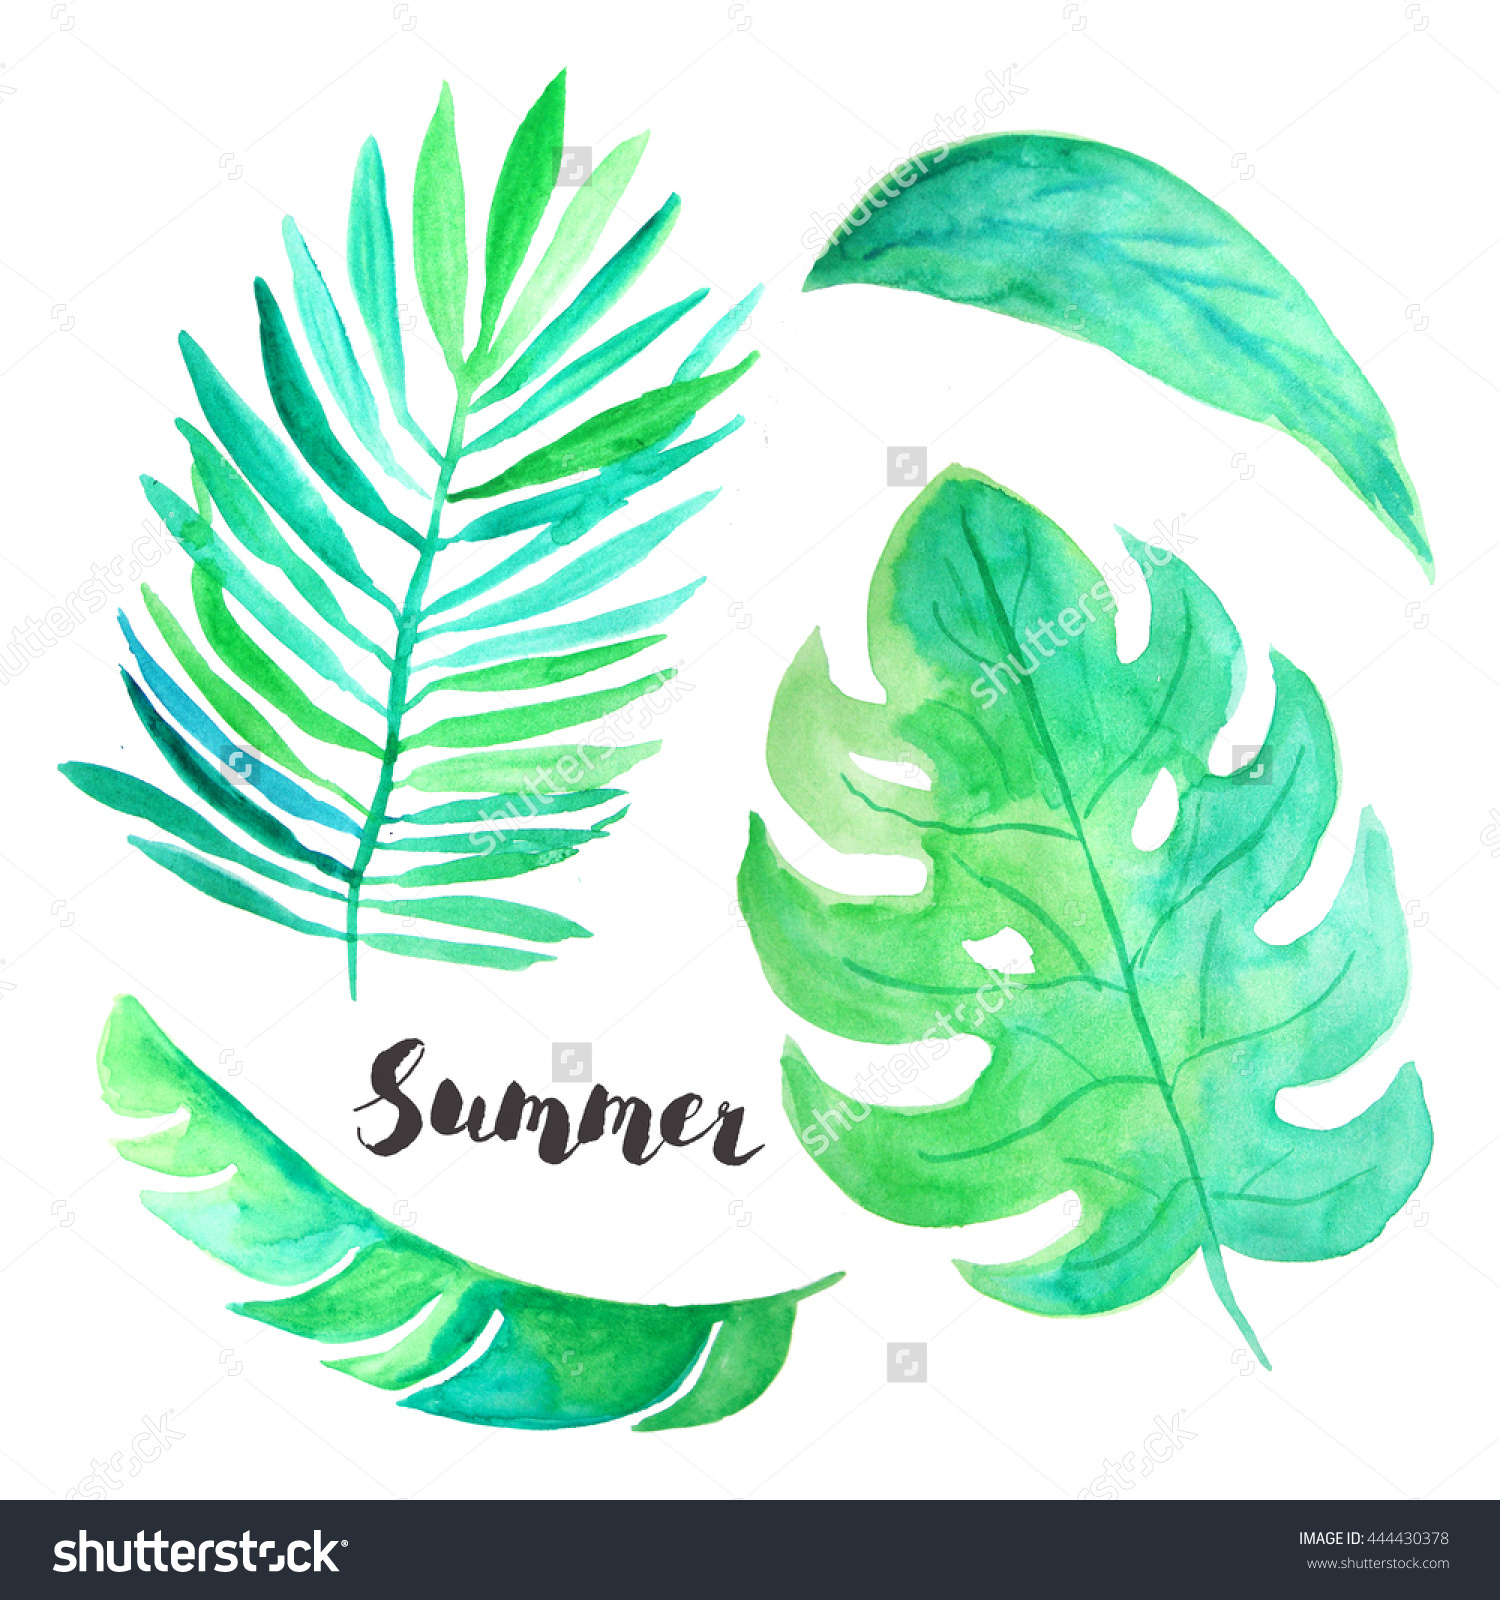 Watercolor Hand Painted Tropical Leaves Plants Stock Illustration.